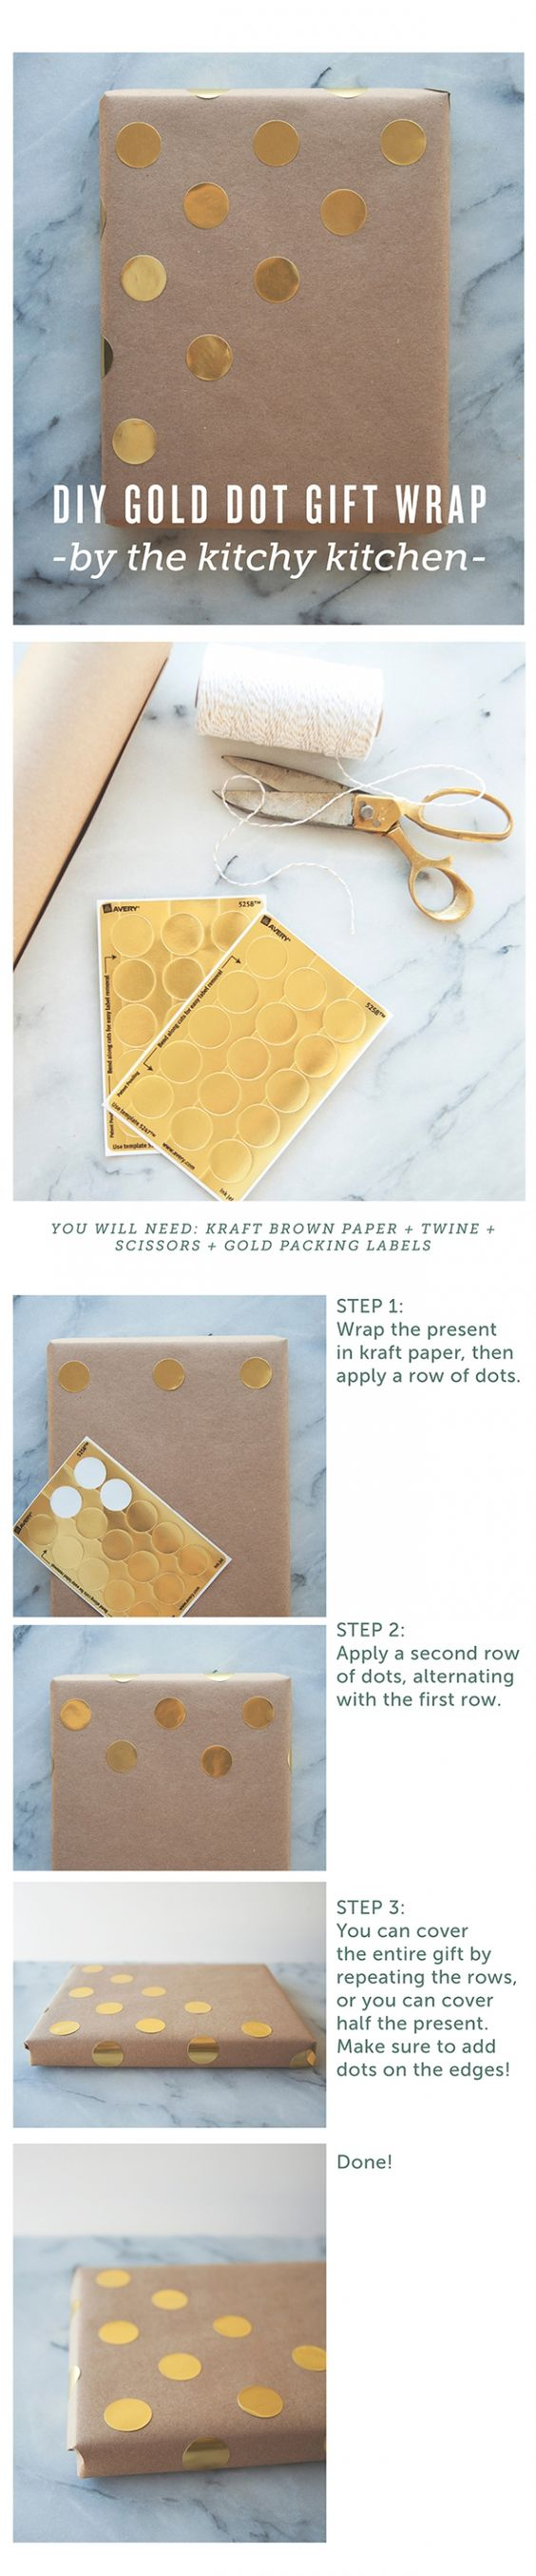 gold dot // diy gift wrapping // the kitchy kitchen | envoltorios